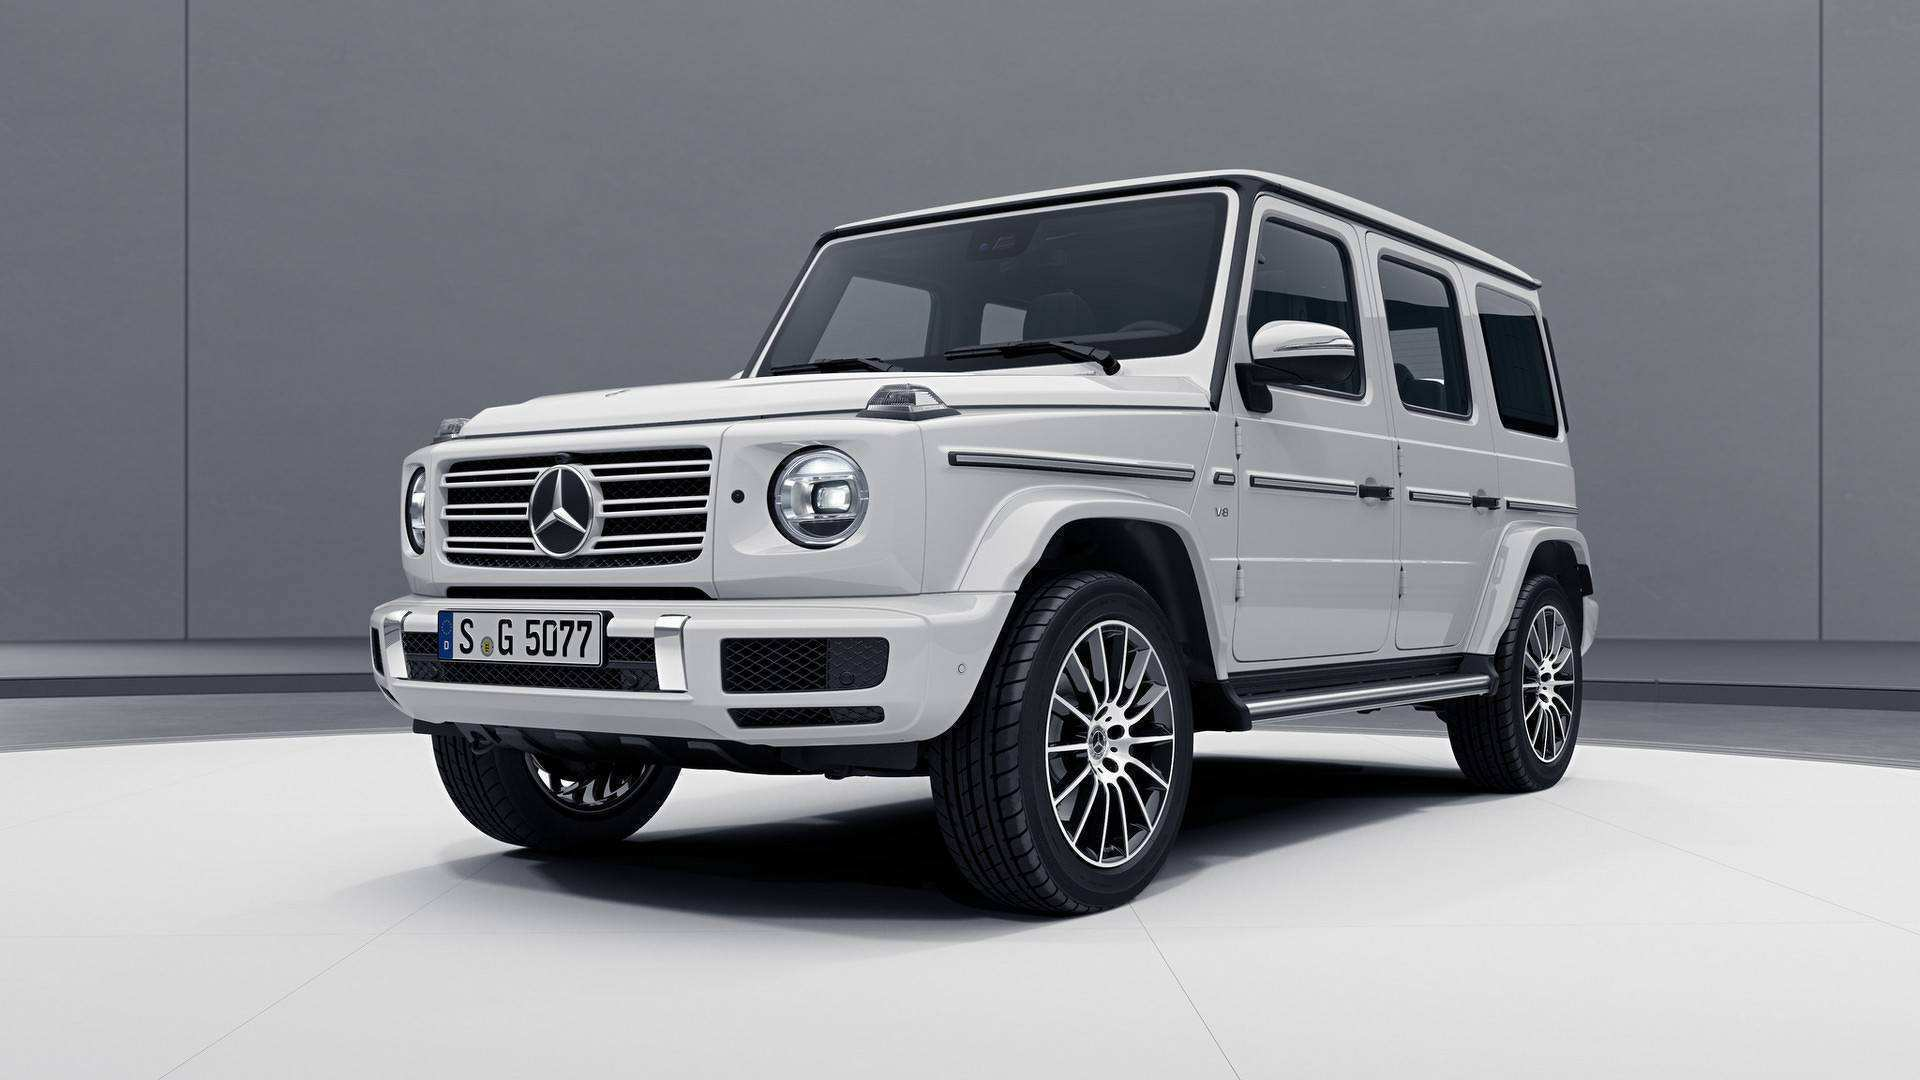 93 All New 2020 Mercedes G Wagon Exterior Date New Concept with 2020 Mercedes G Wagon Exterior Date